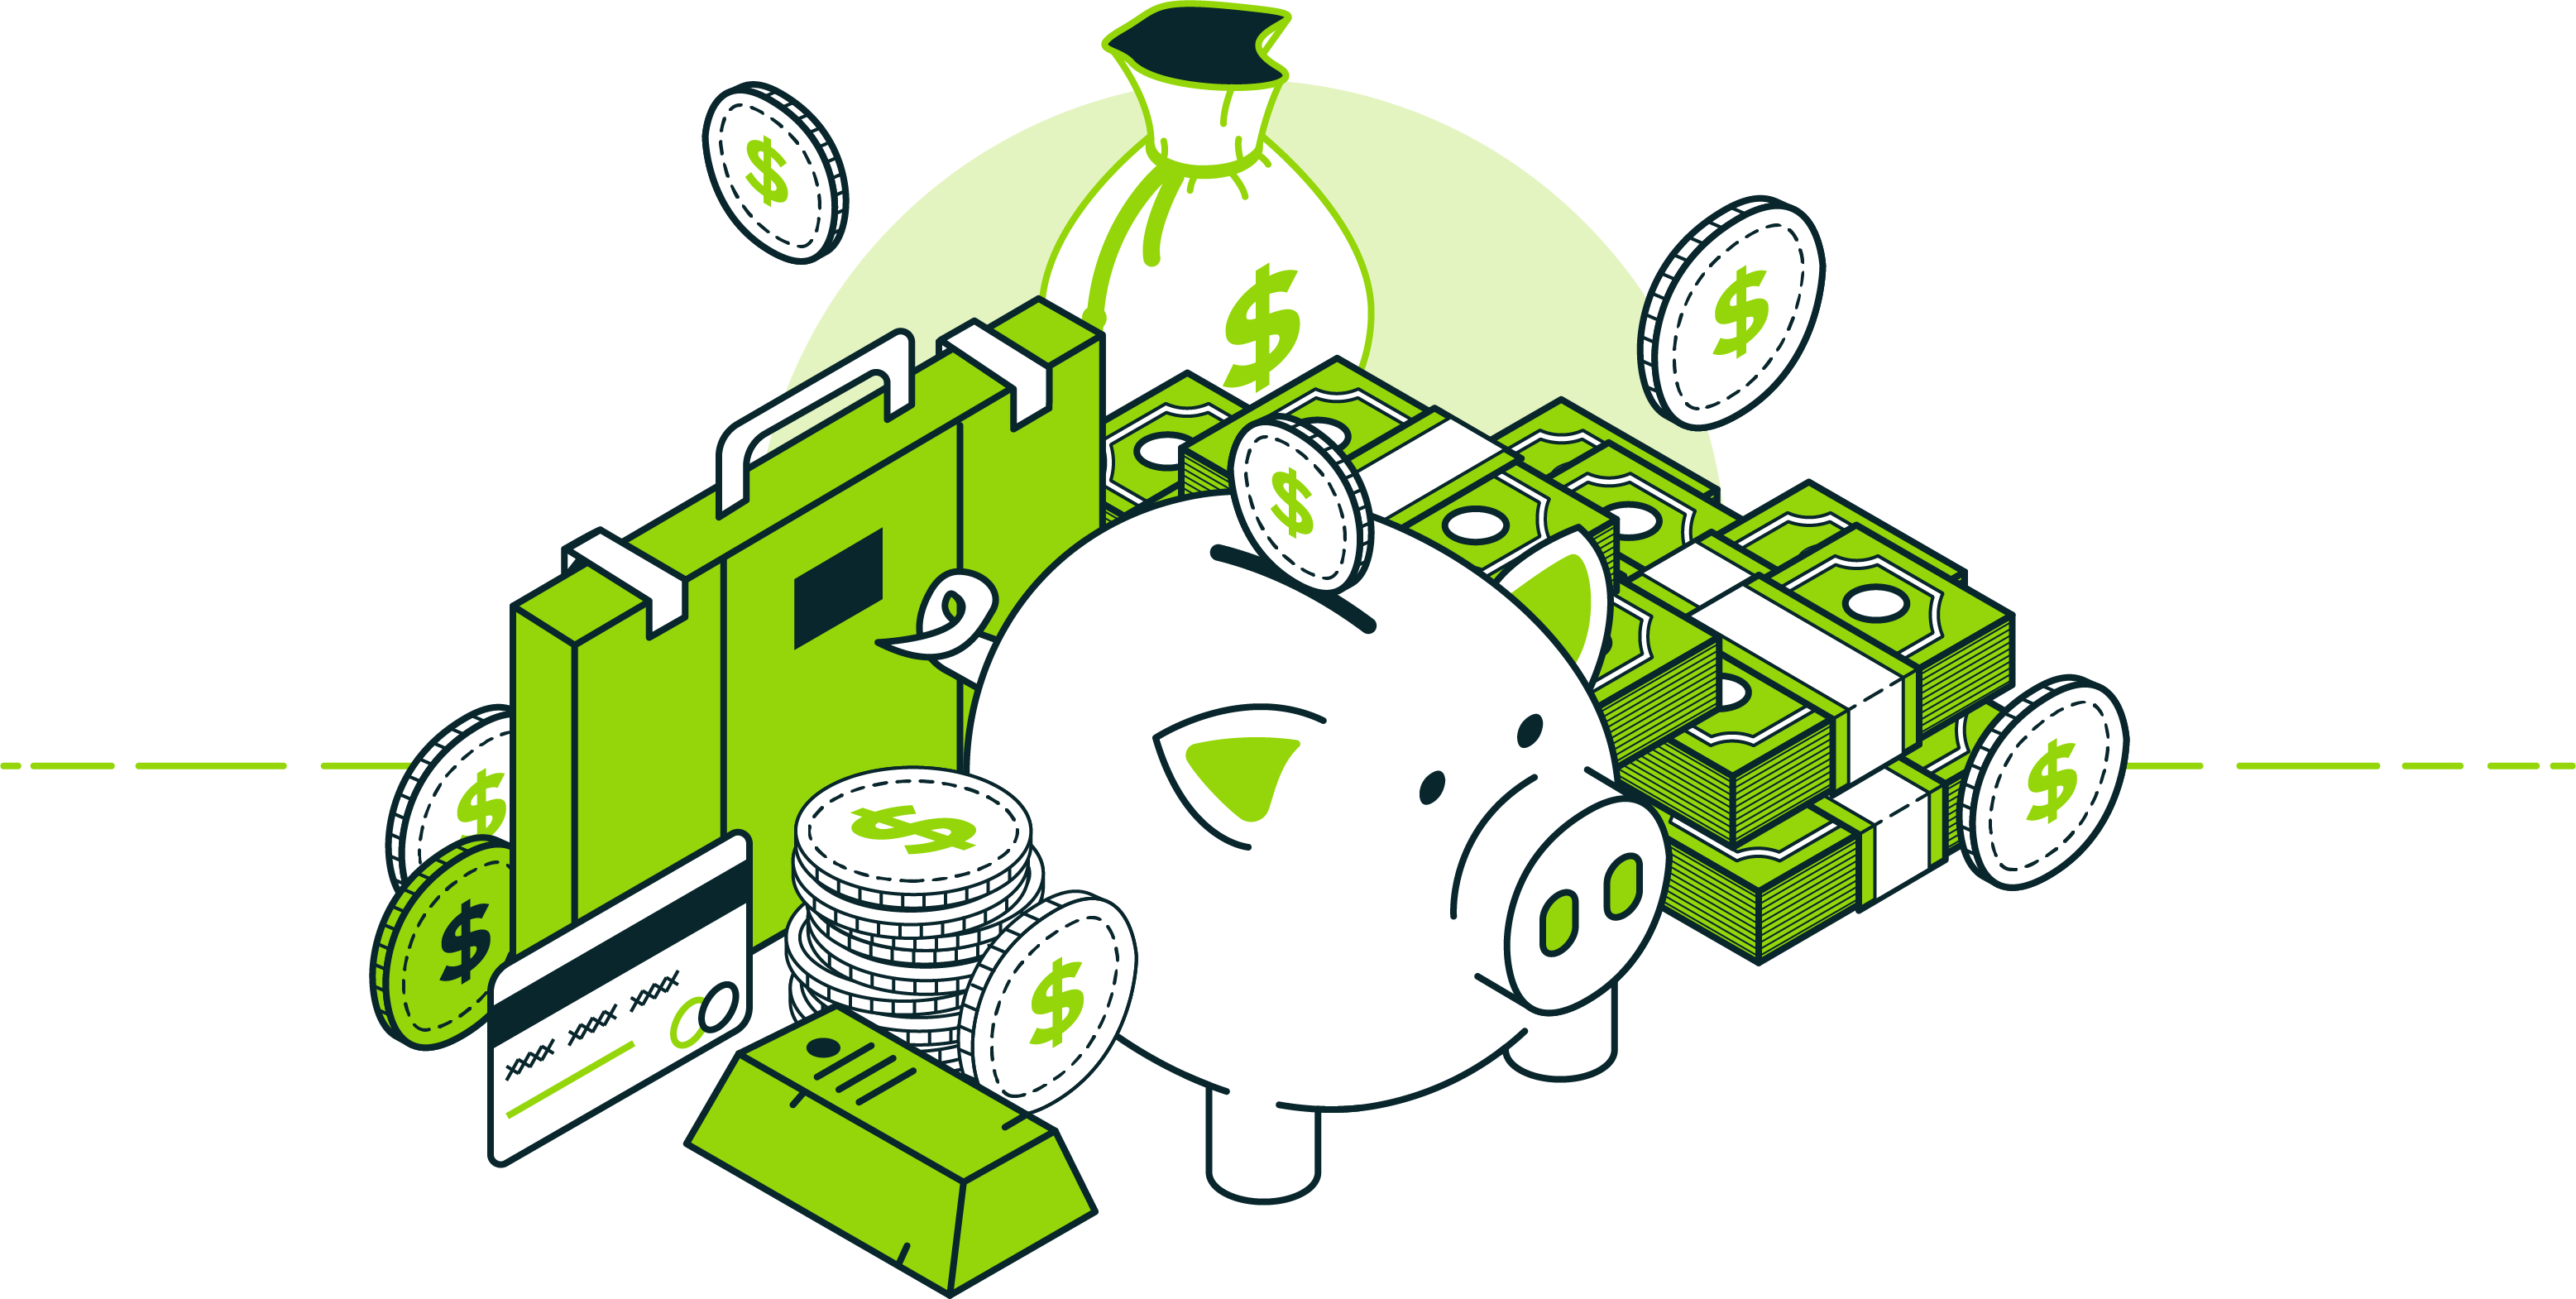 Money Recovered Illustration